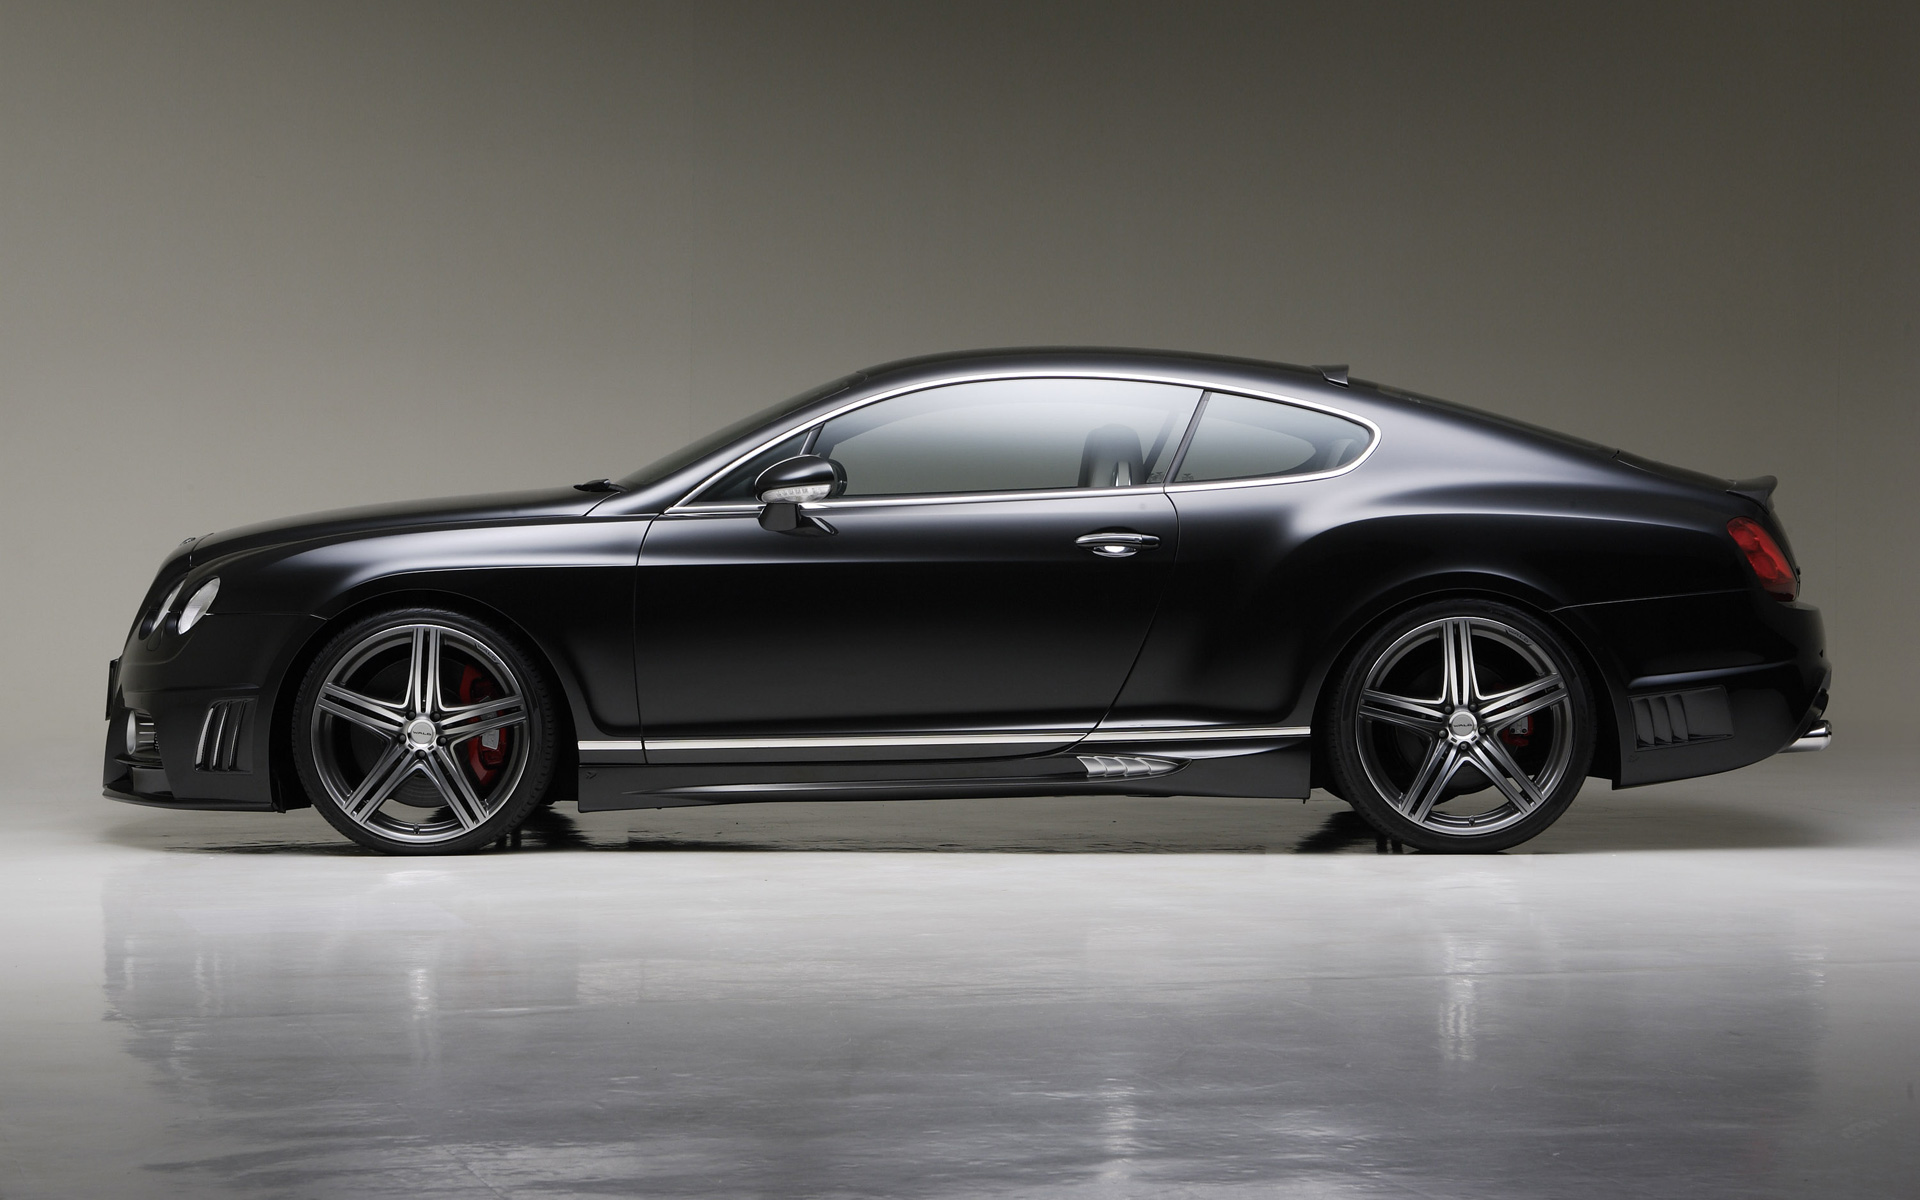 Bentley Continental GTC Wallpaper HD For Android